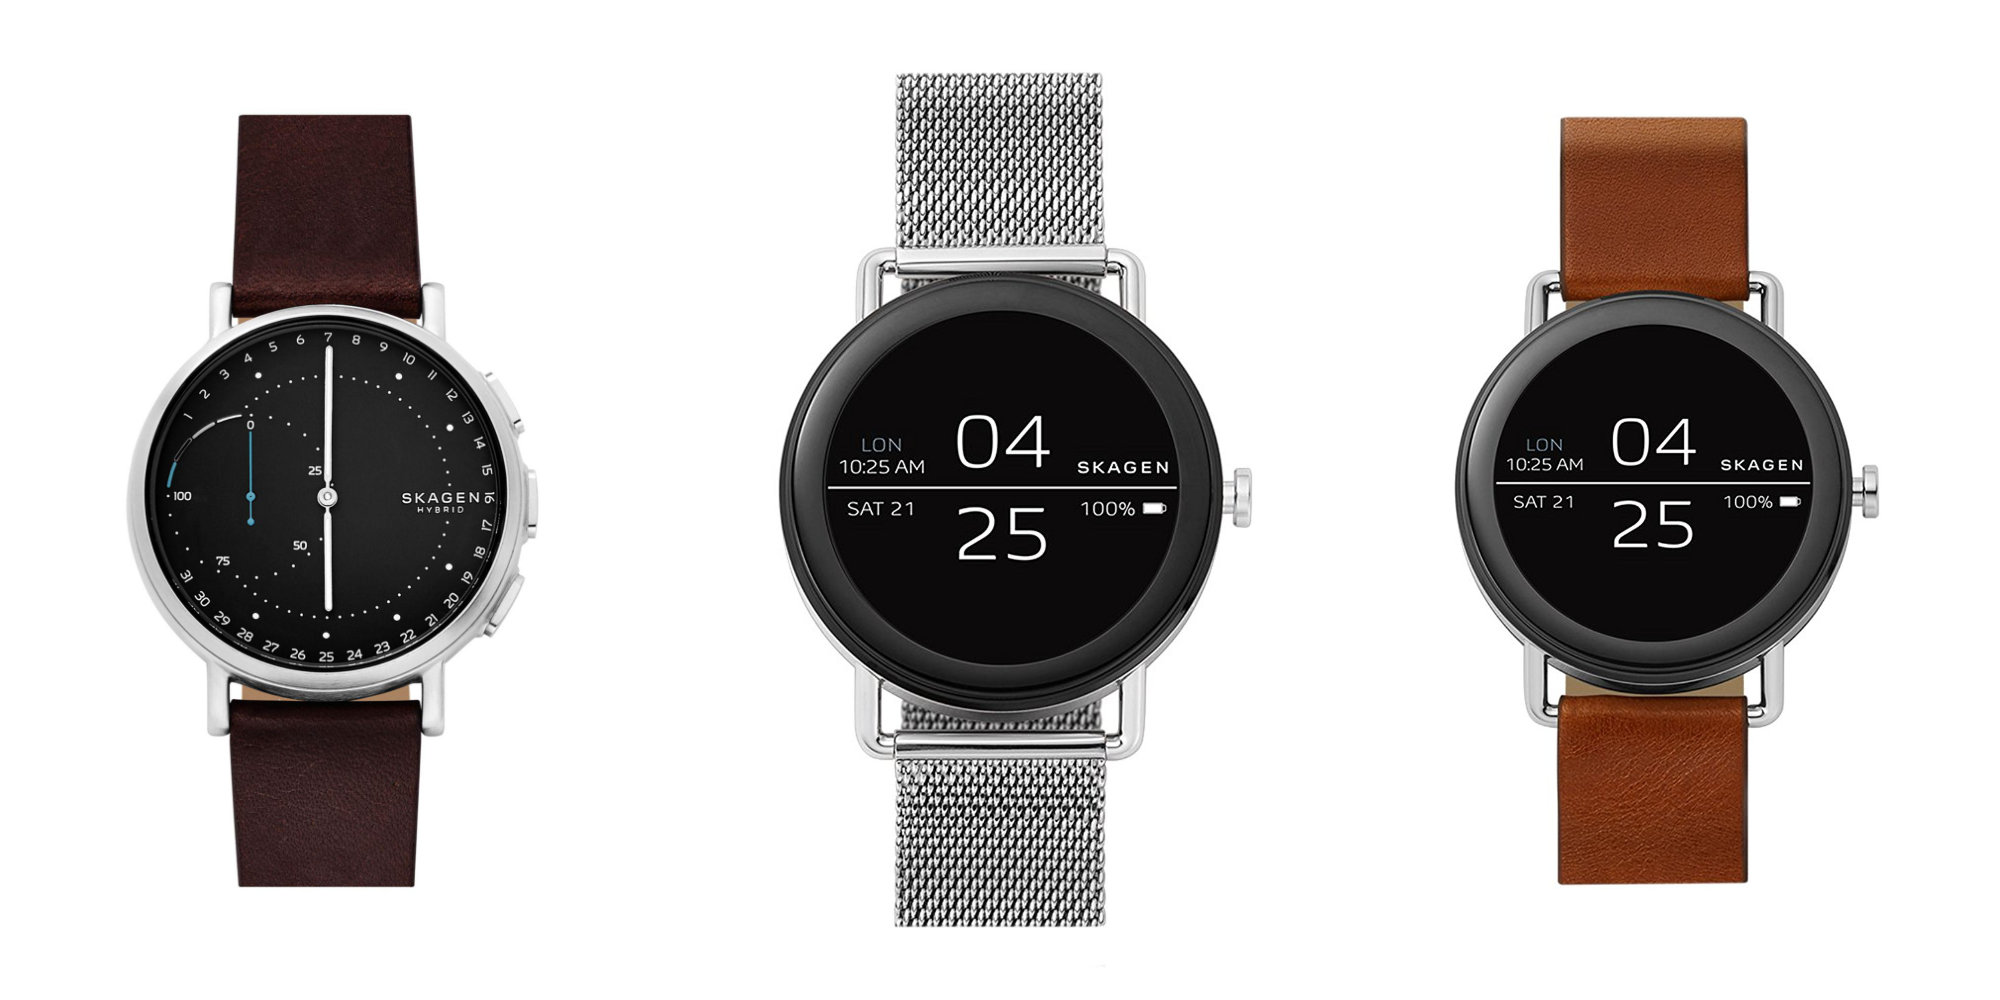 Strap on Skagen's Falster Smartwatch for $199 (Reg. $295), more from $95